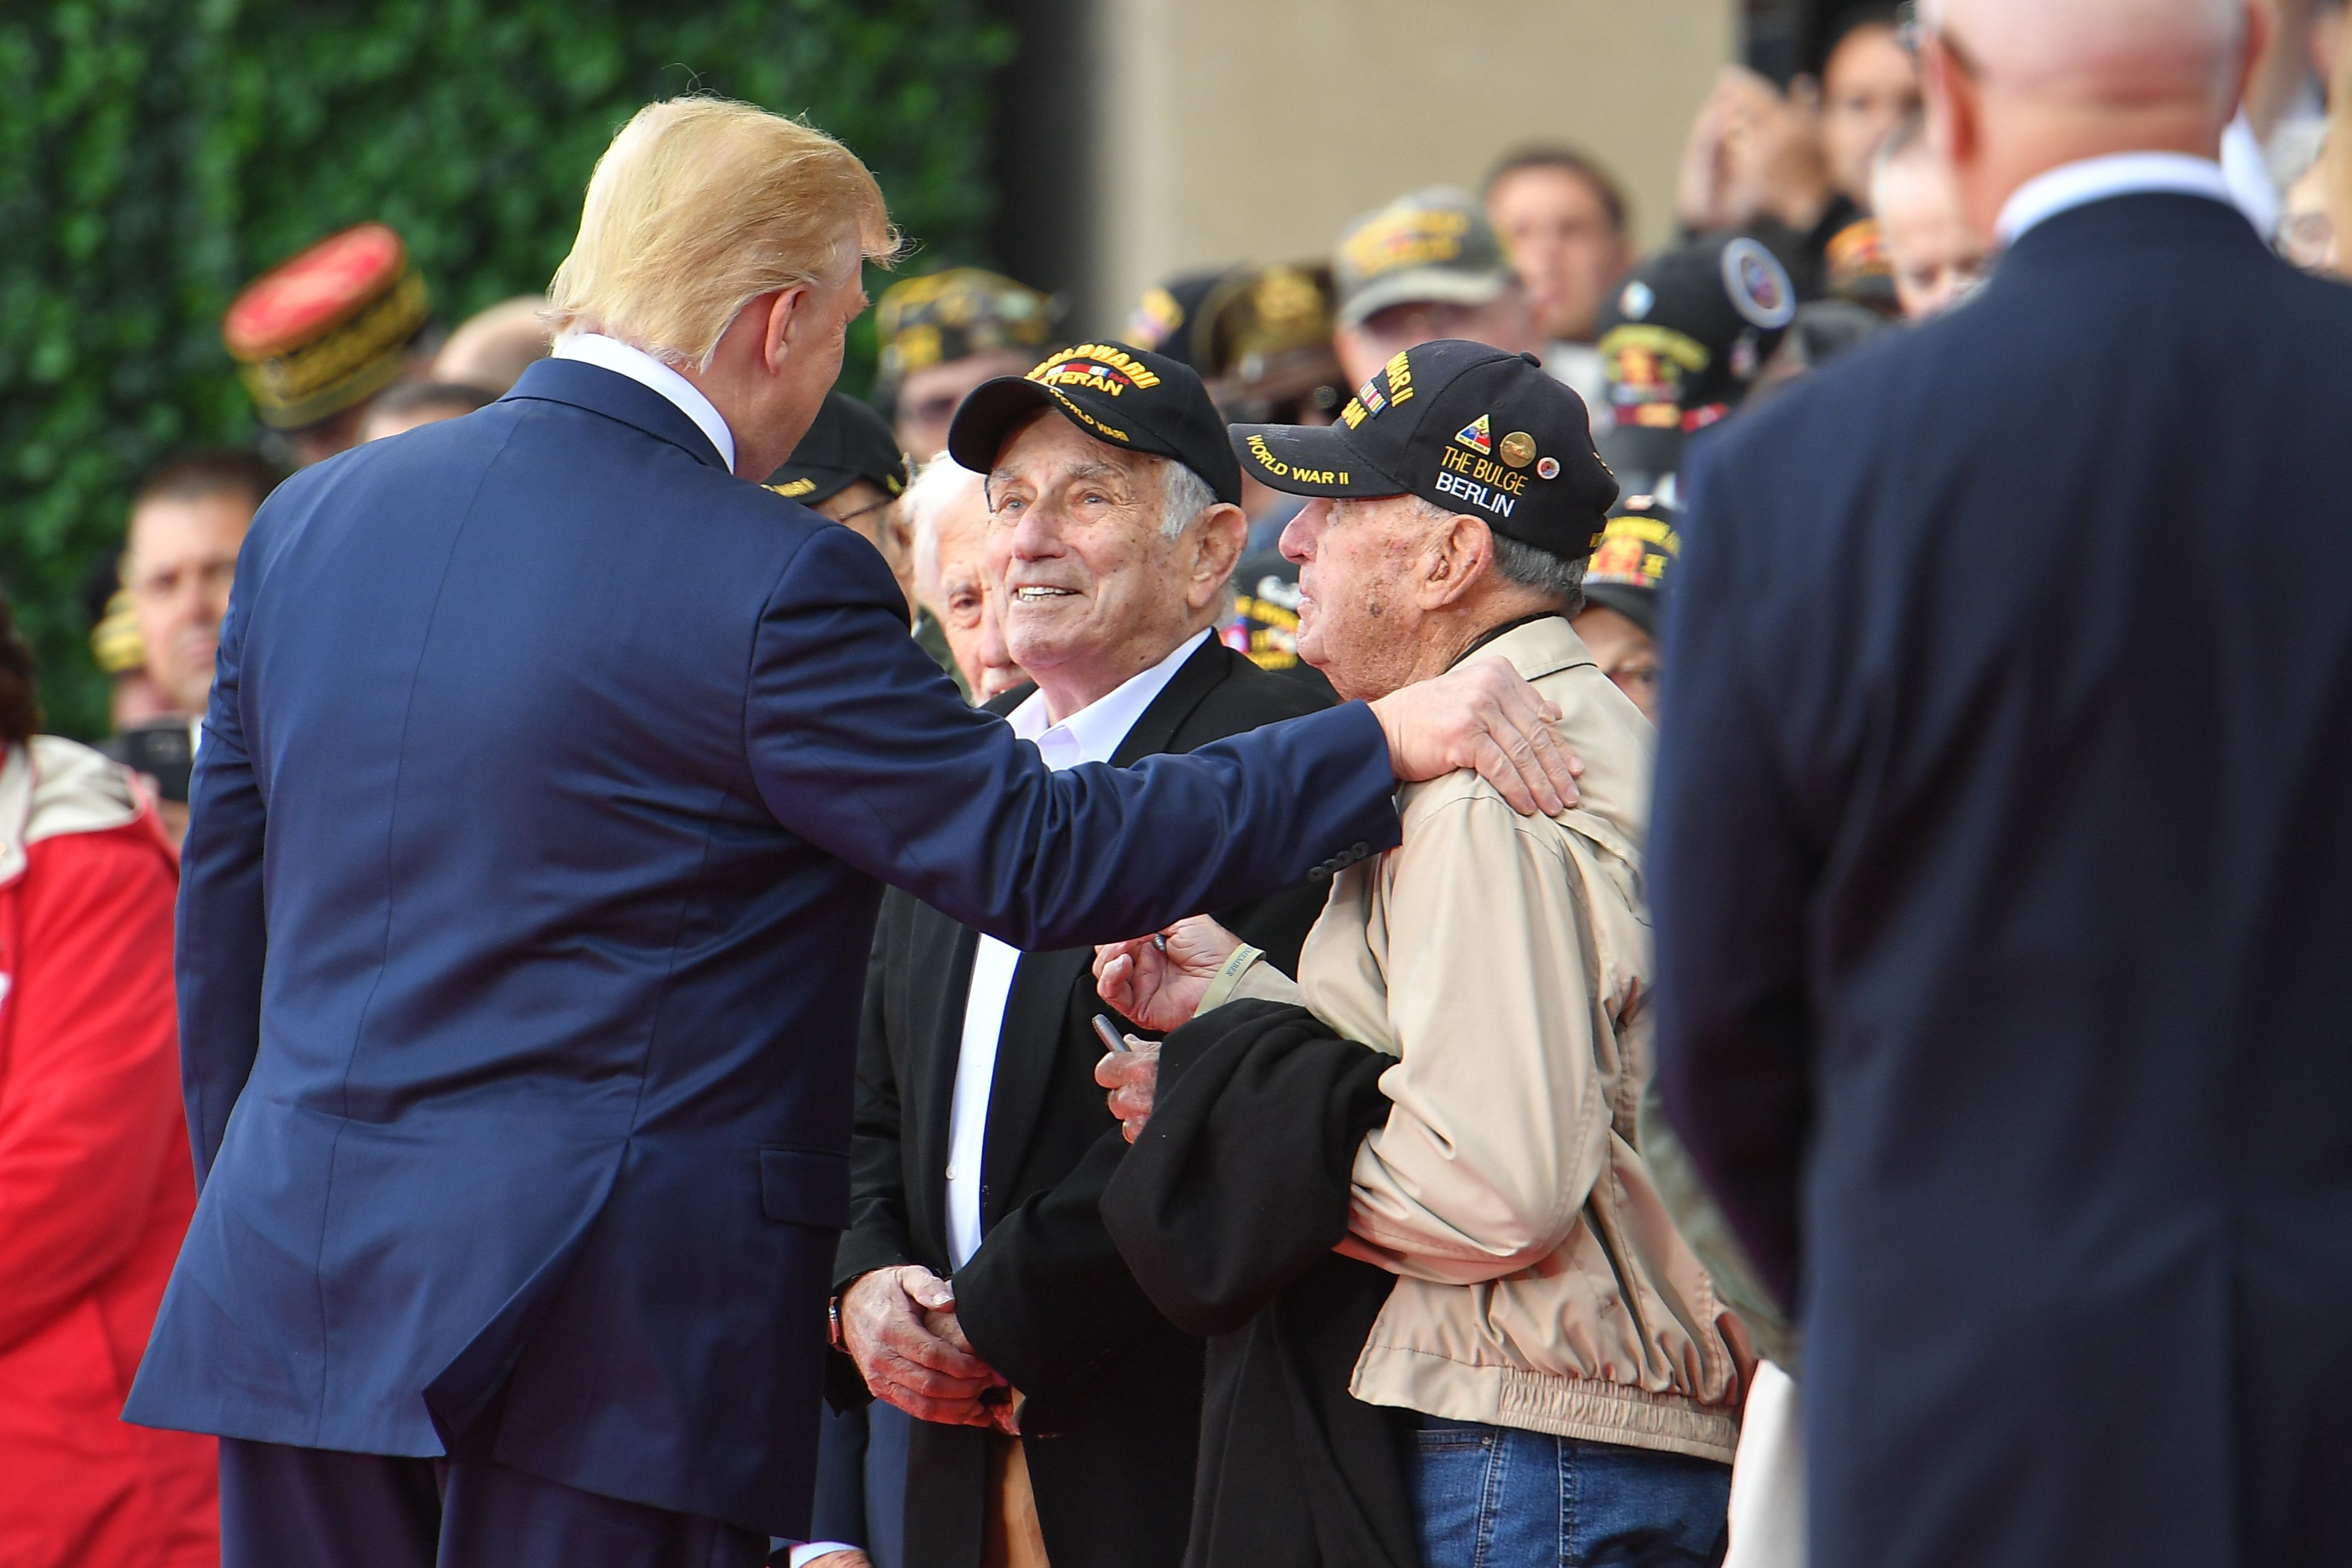 OP-065 DONALD TRUMP DURING THE 75TH COMMEMORATION OF D-DAY FRANCE  8X10 PHOTO